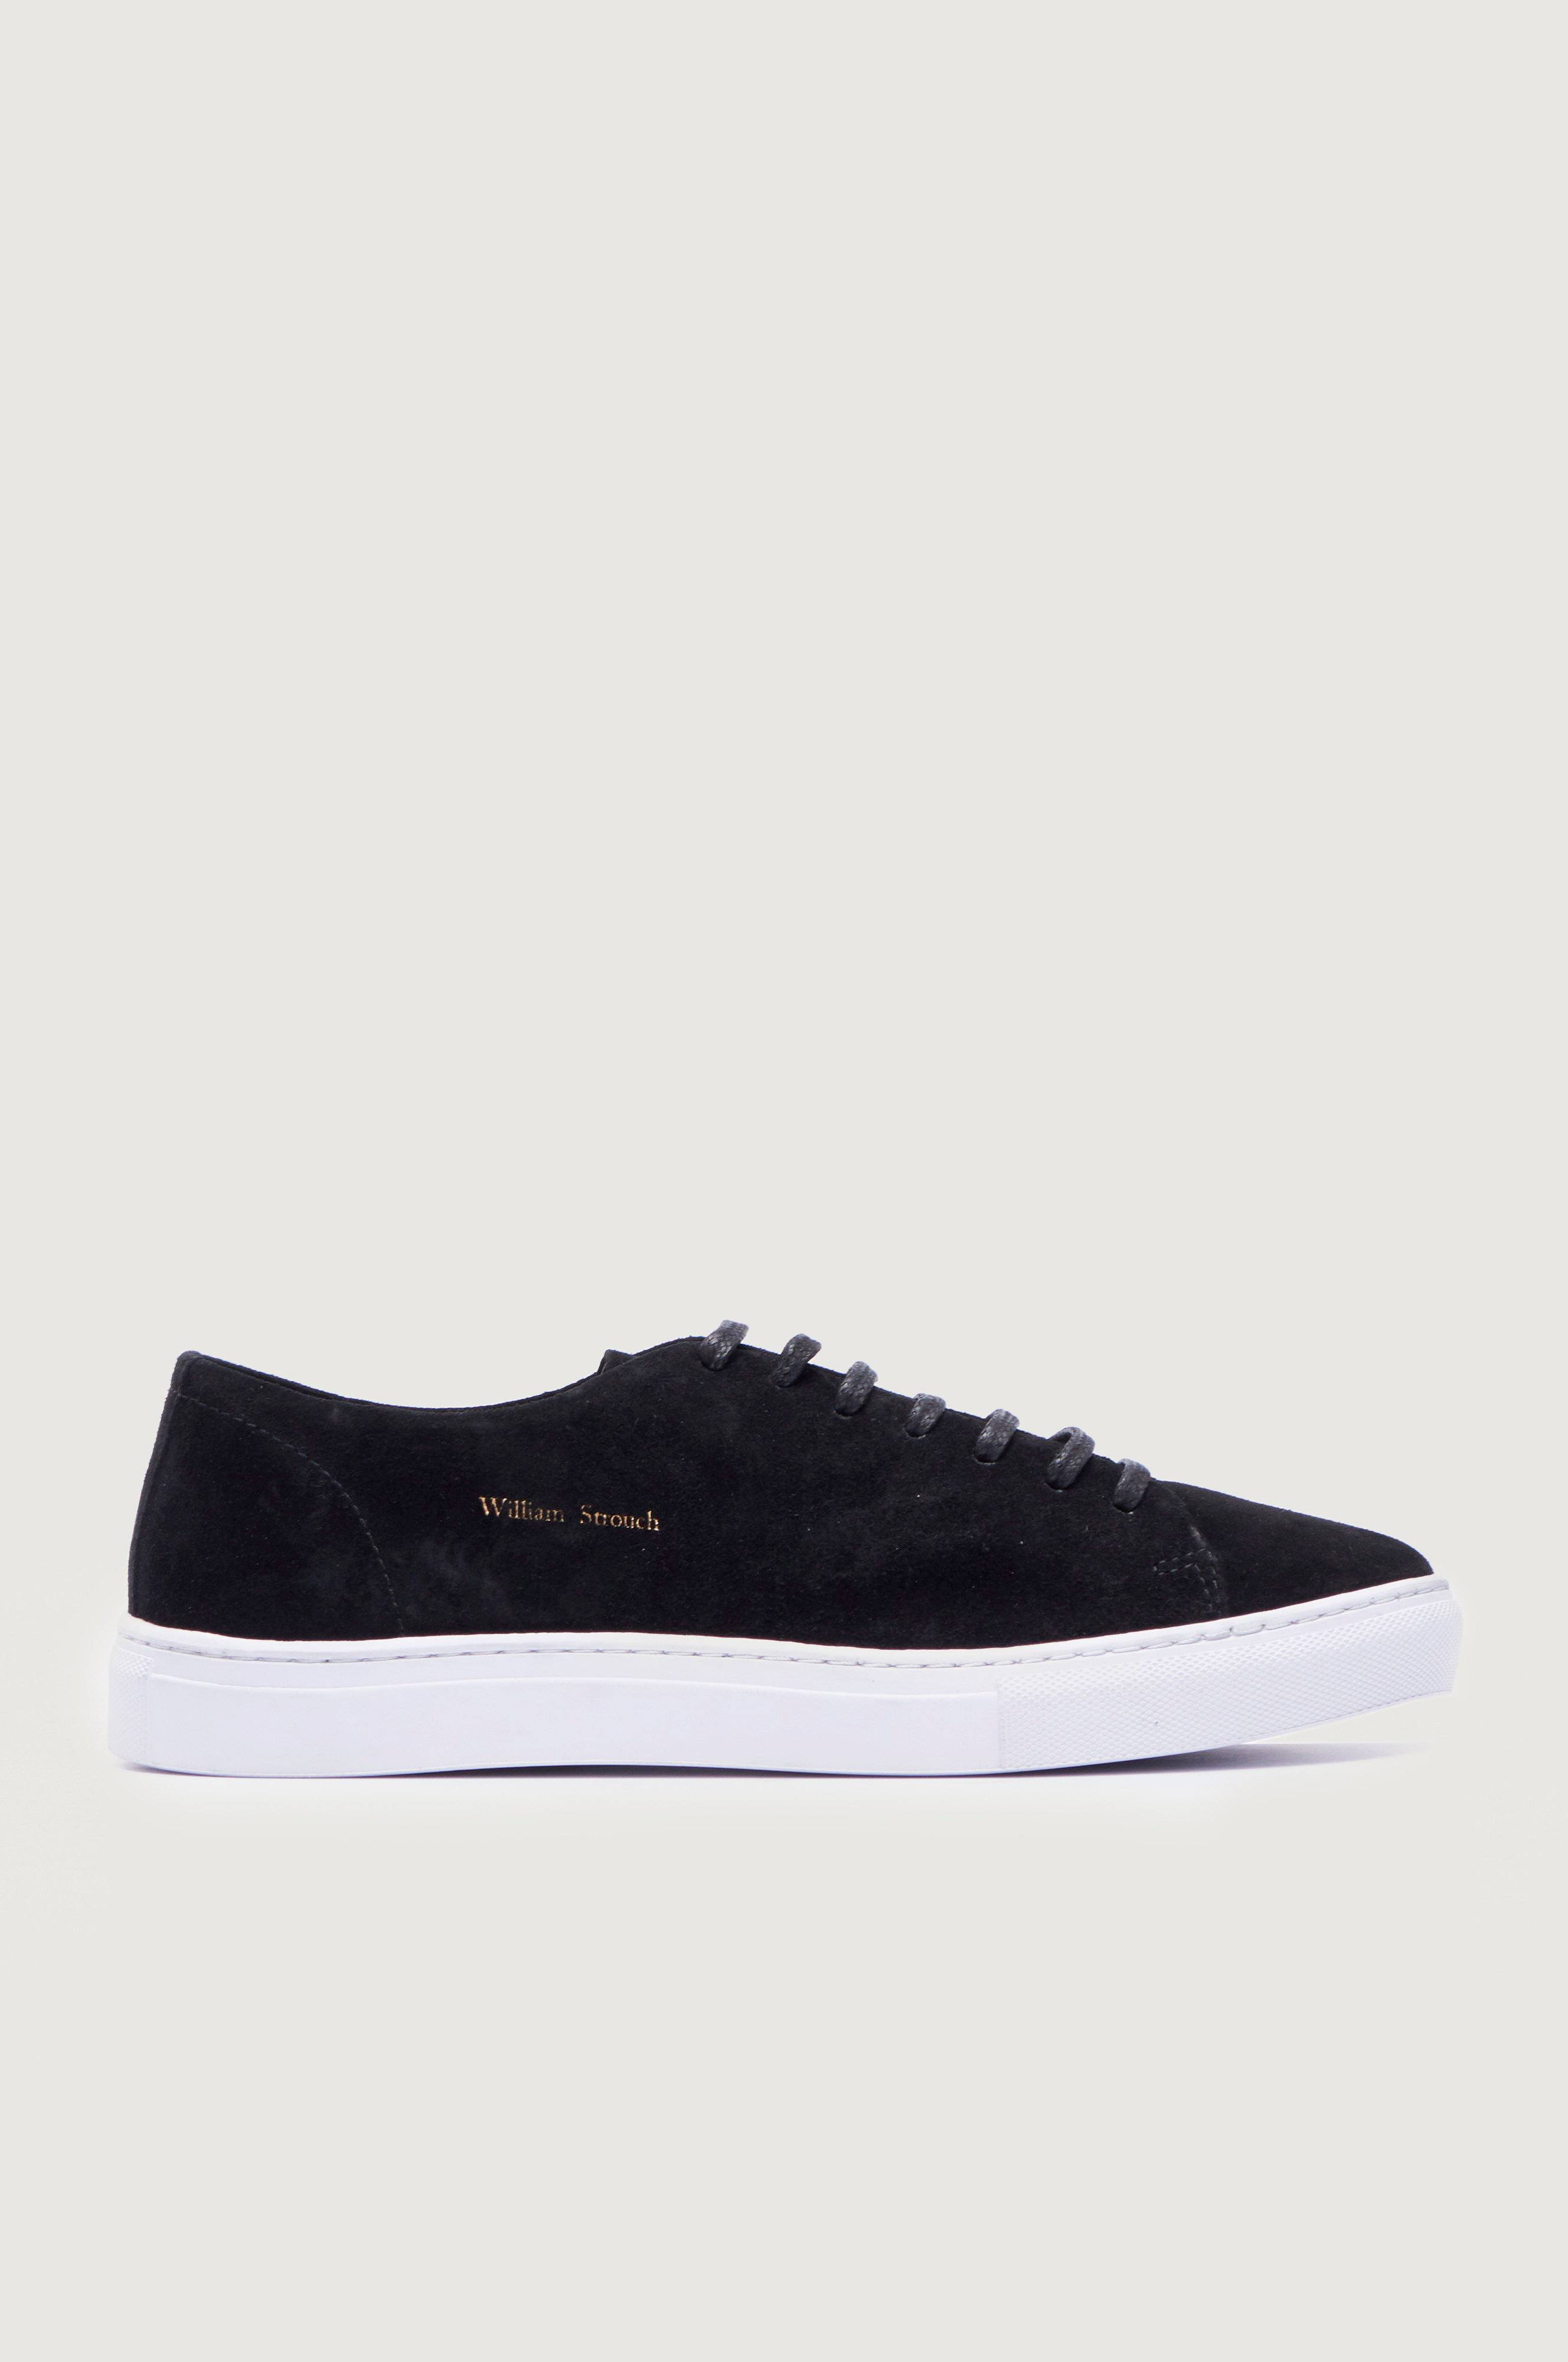 William Strouch SH Classic Suede Sneakers Svart